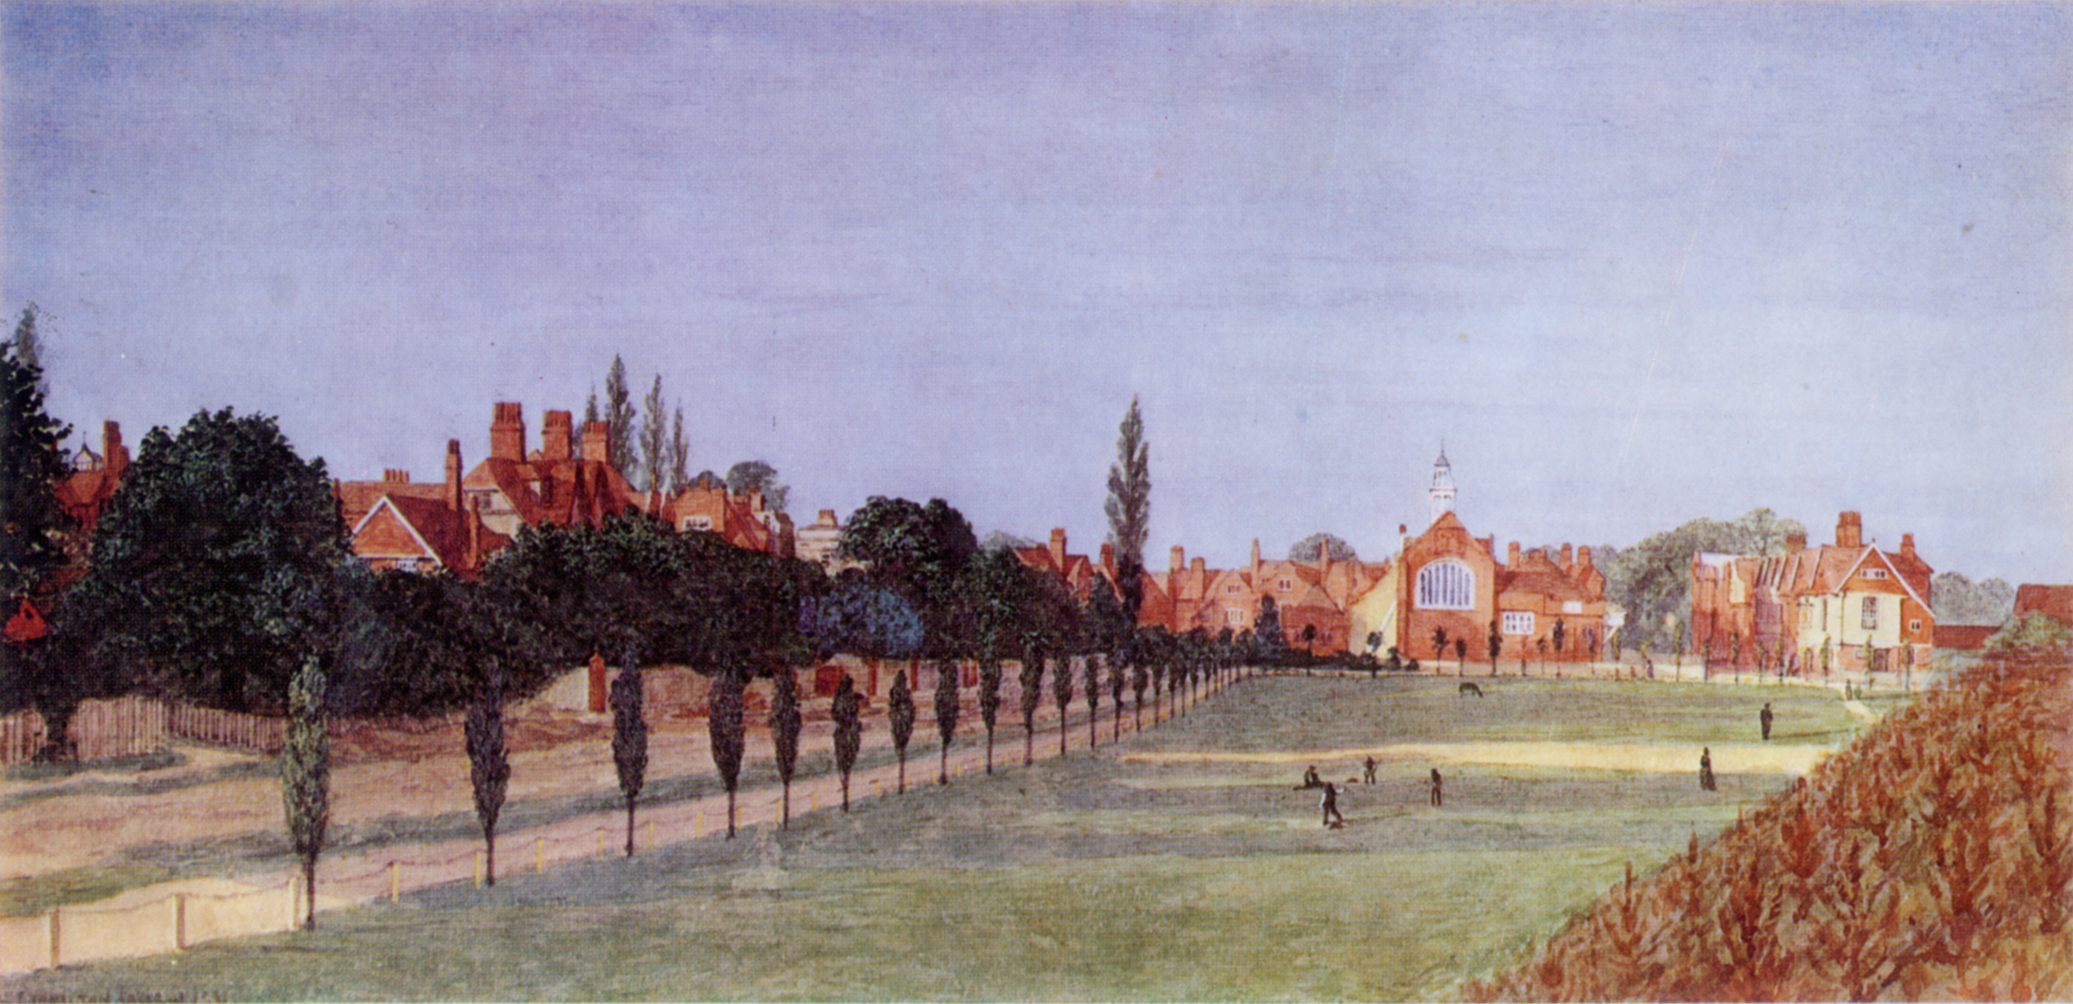 Bedford Park 1881 - #1405AB Bed Soc painting